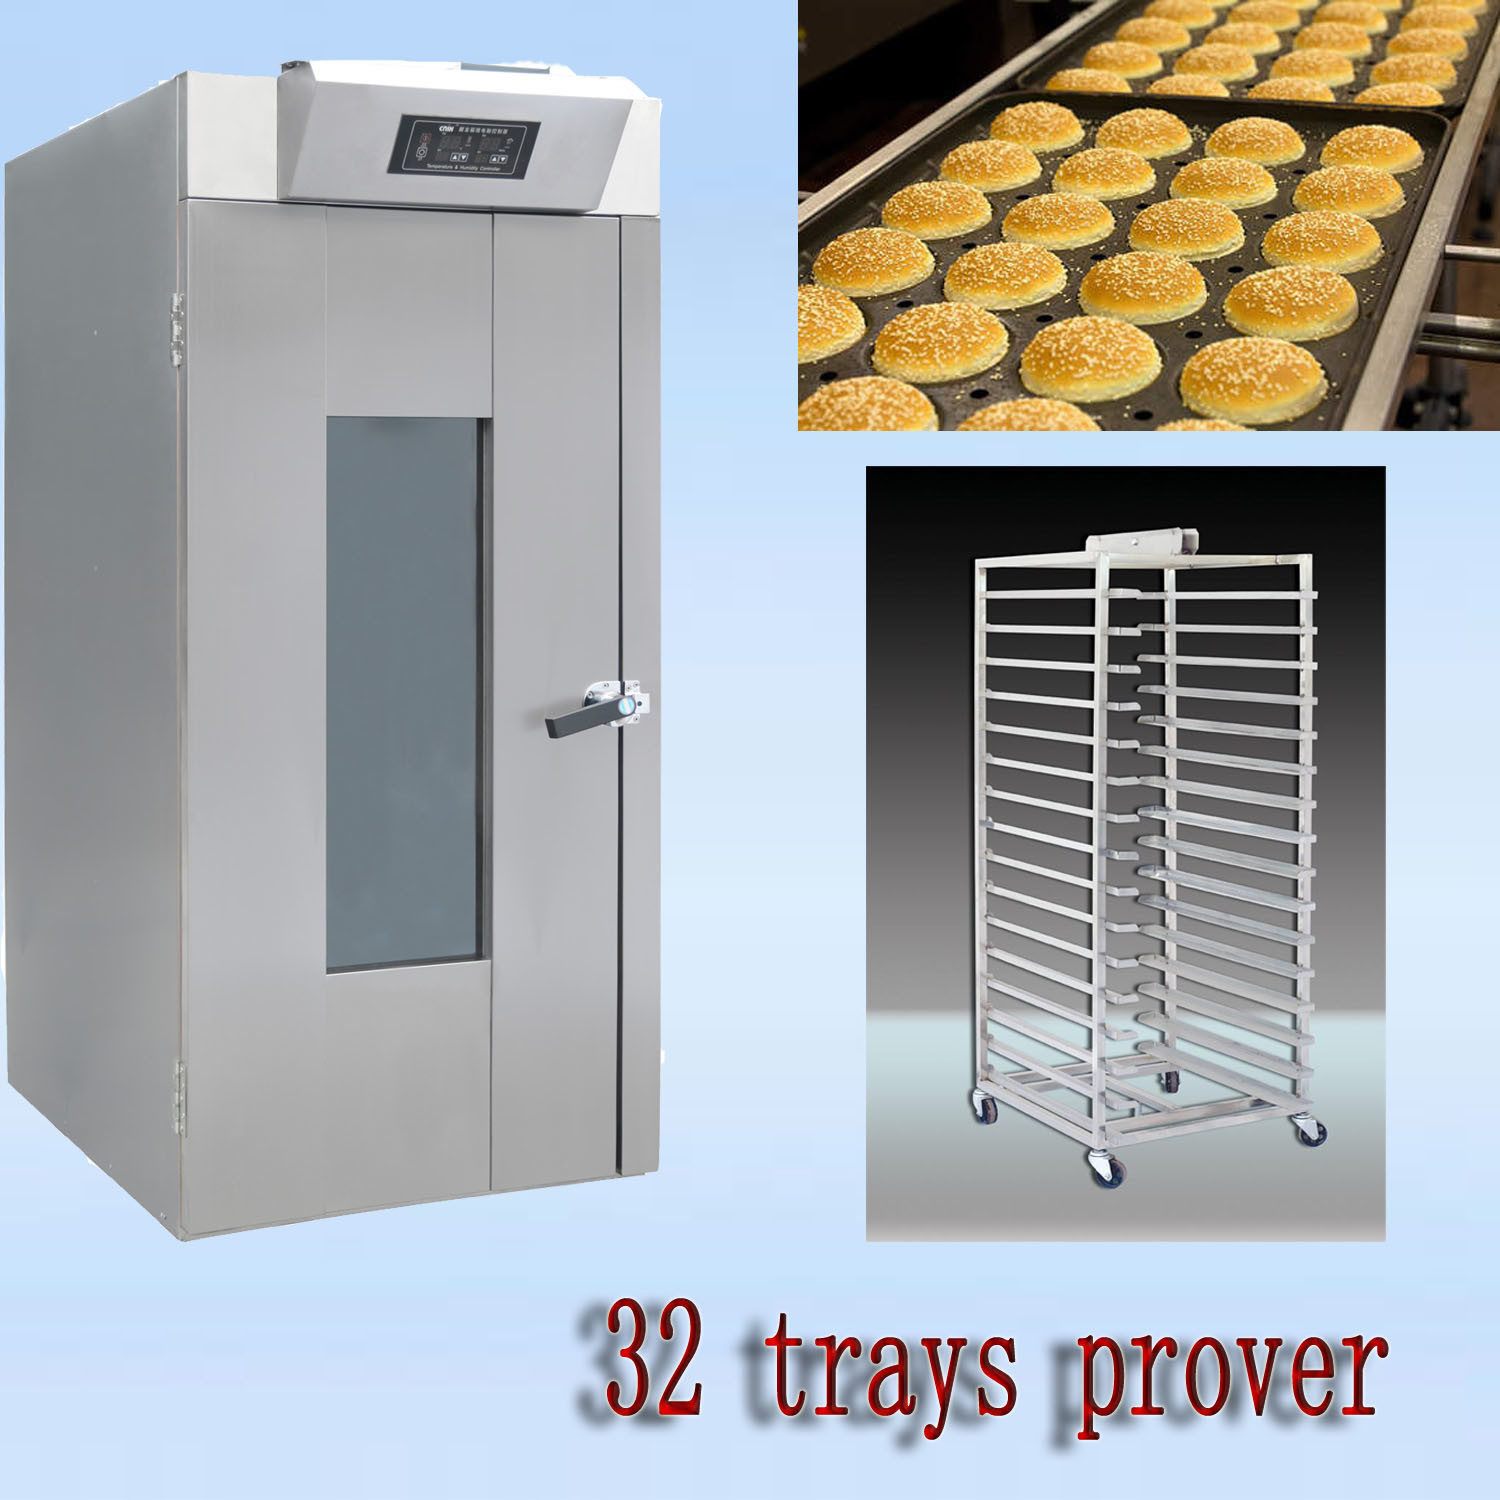 64 Trays Prover/Bread Prover/Fermenting Box/Food Machine/Oven/Bread Machine/Kitchen Equipment